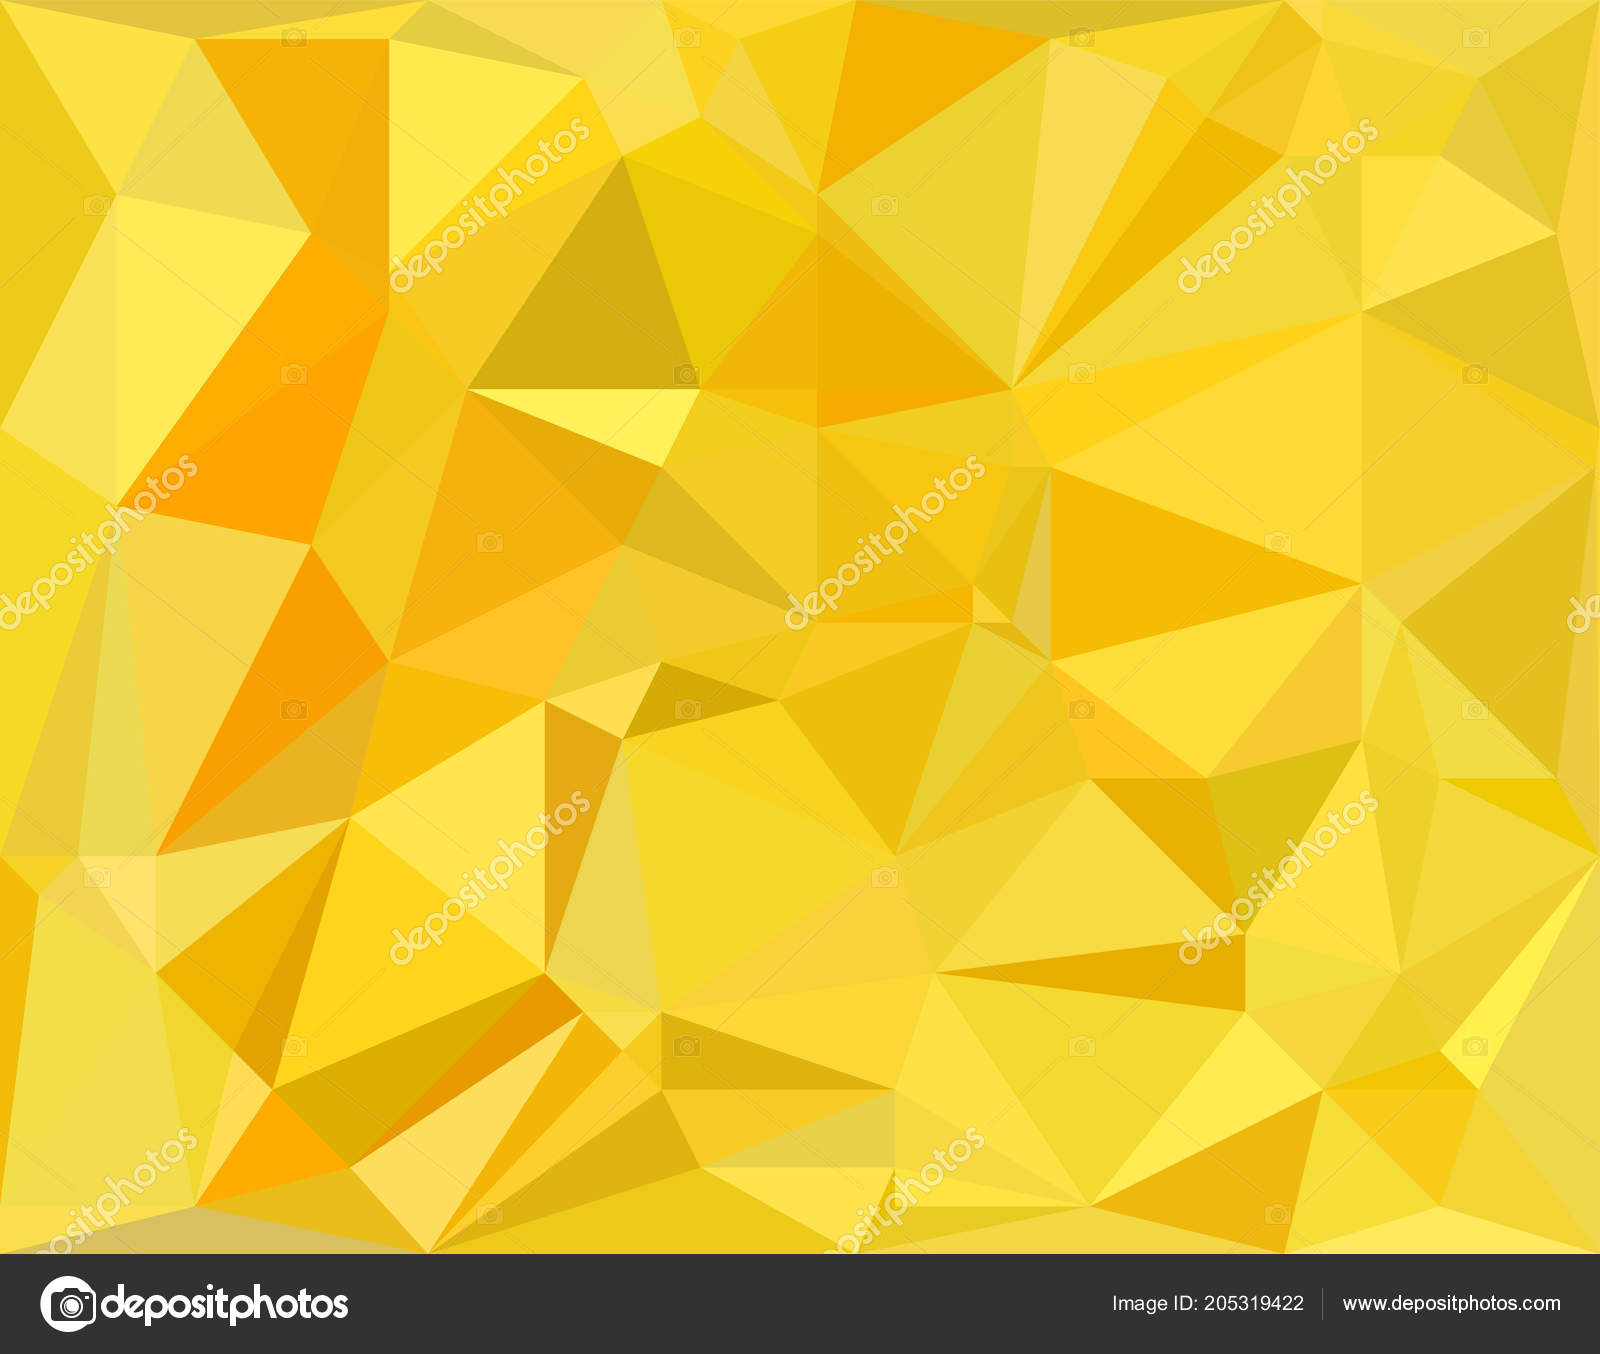 Sutes That Are Yellow: Yellow Background Triangulation Cool Background Web Site